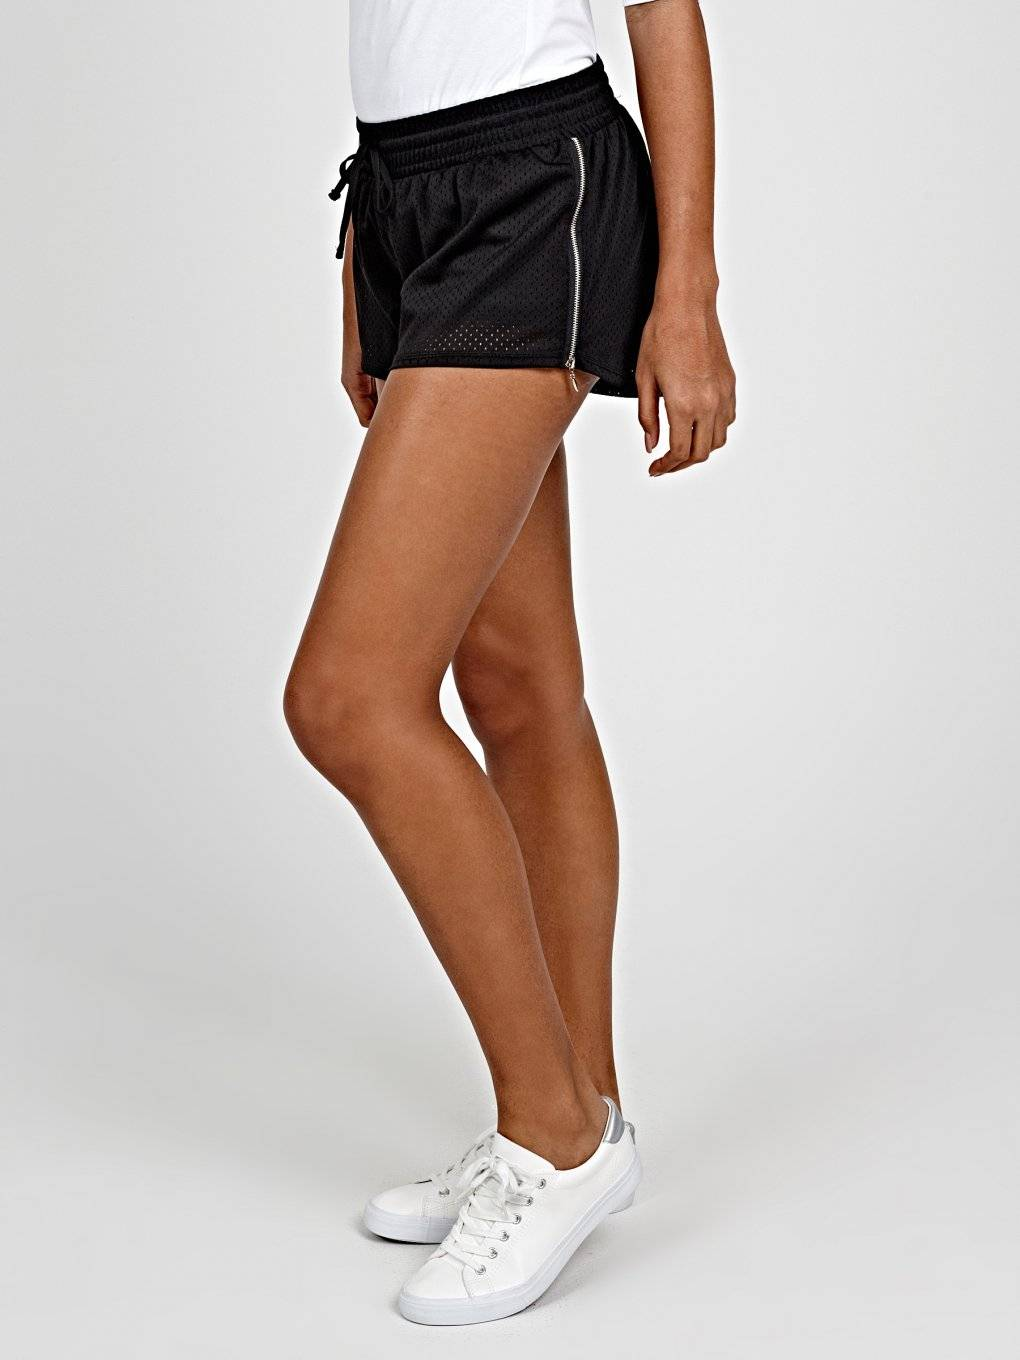 SPORTS SHORTS WITH SIDE ZIPPERS